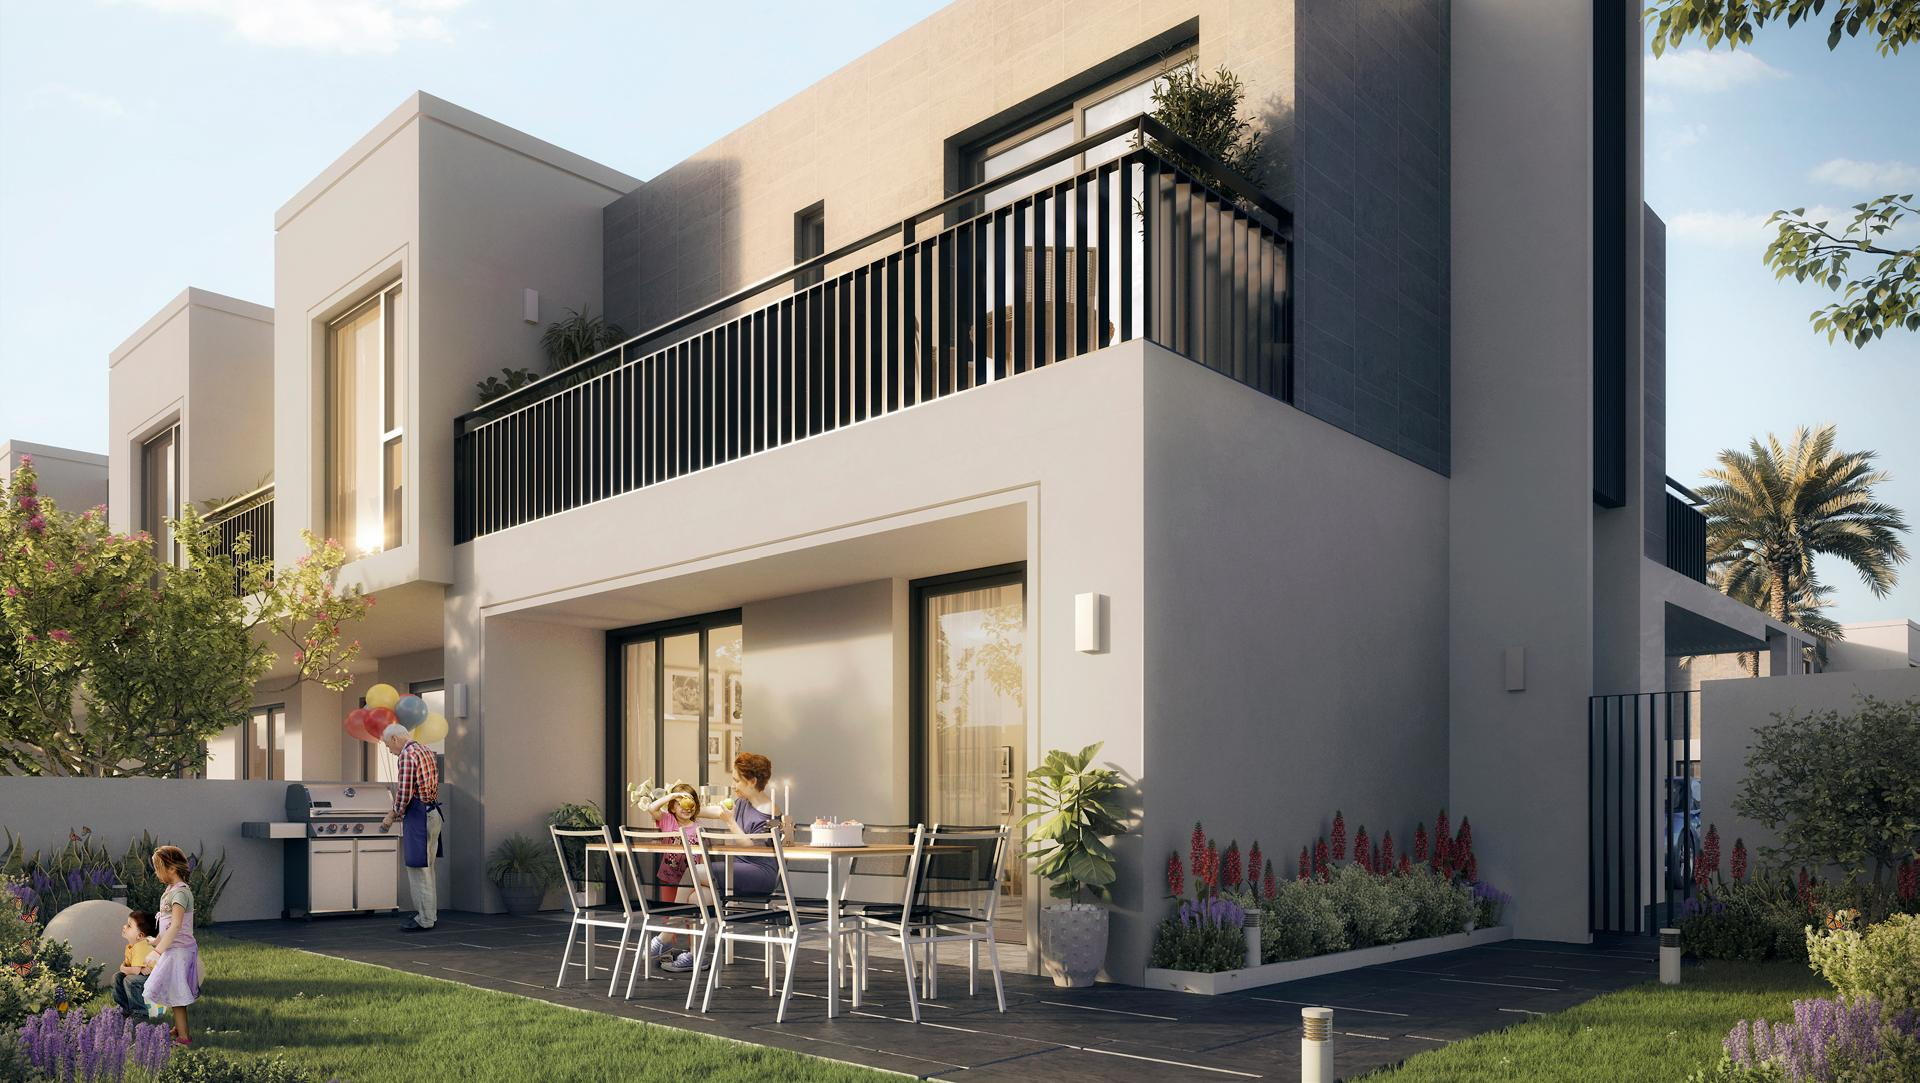 4Br Townhouse Close to Expo 2020 and Airport.